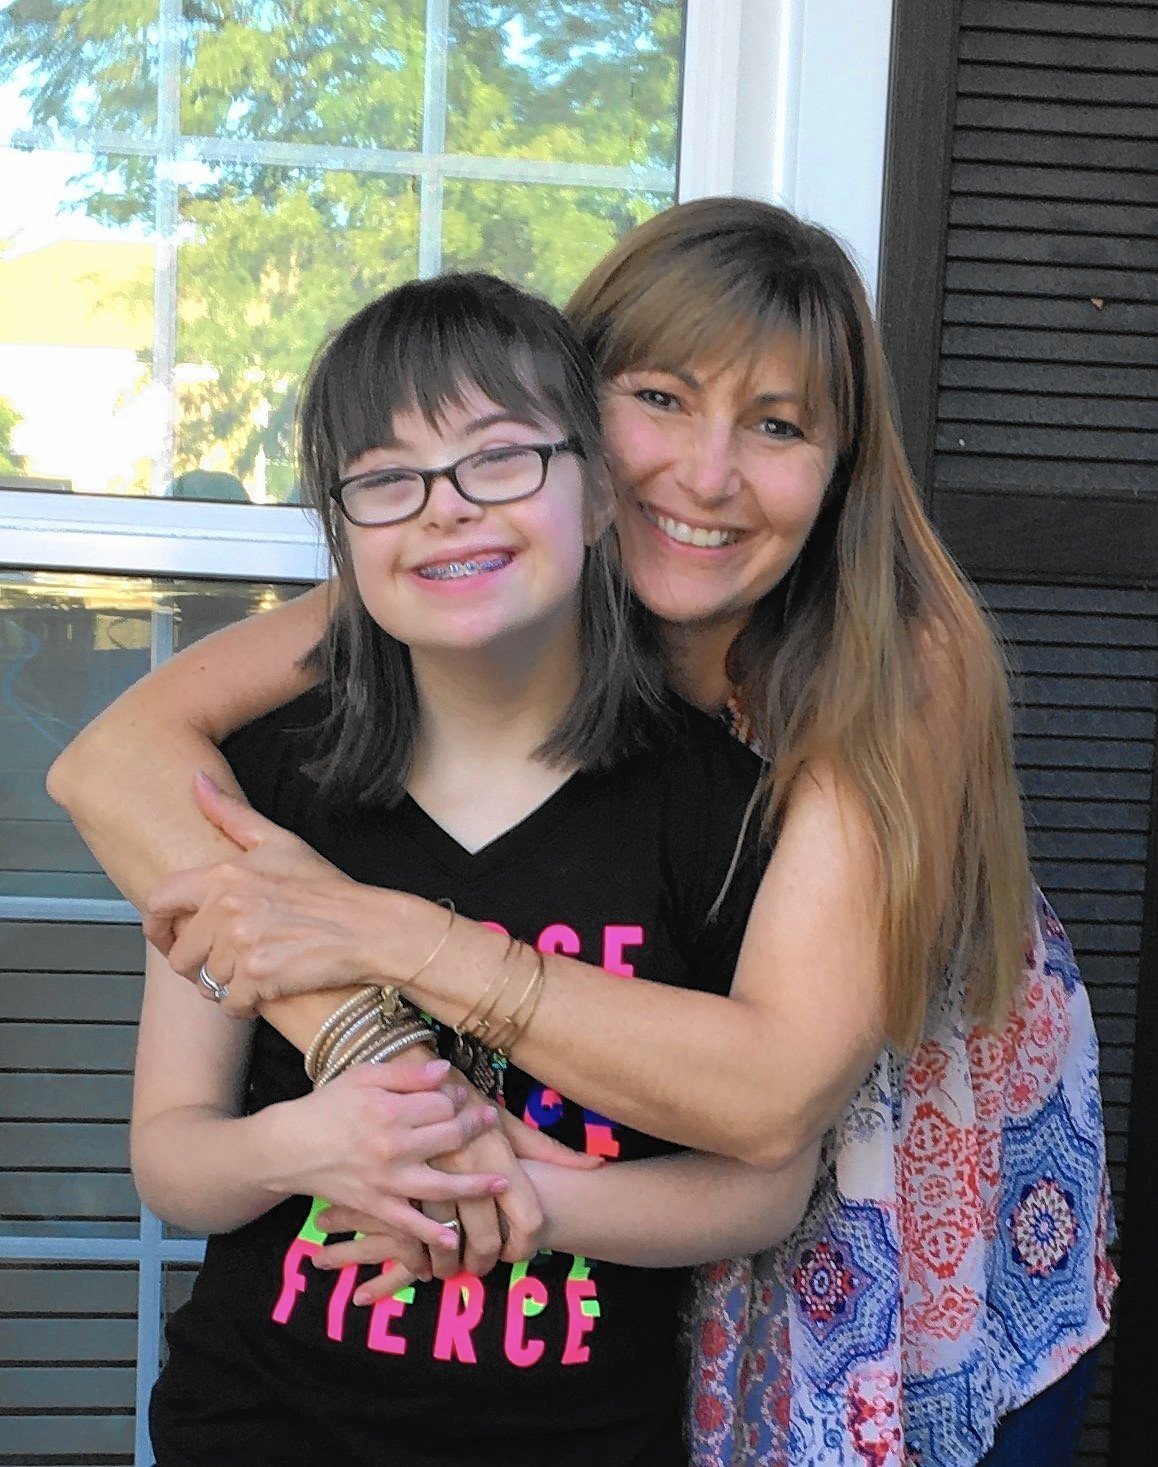 daughter down syndrome an inspiration for essay writing daughter down syndrome an inspiration for essay writing career naperville sun